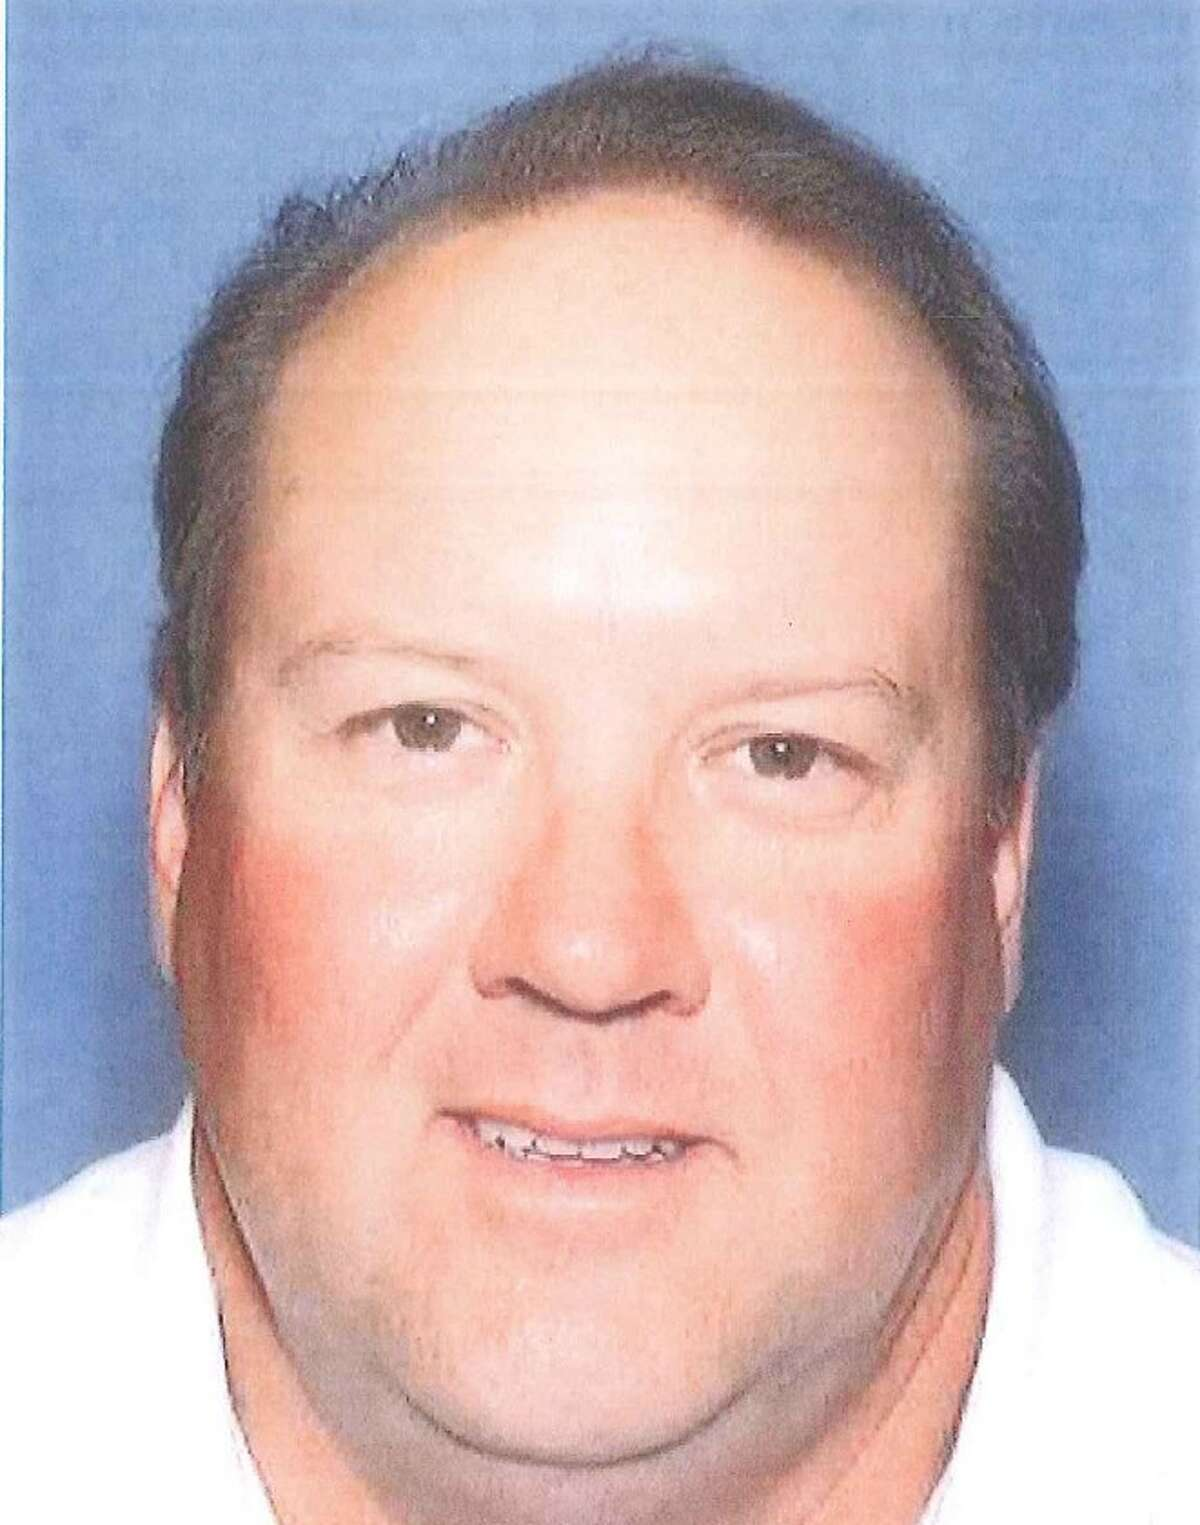 William Randall Charba, 42, last seen at 100 Deer Crossing, Wimberley, Texas.